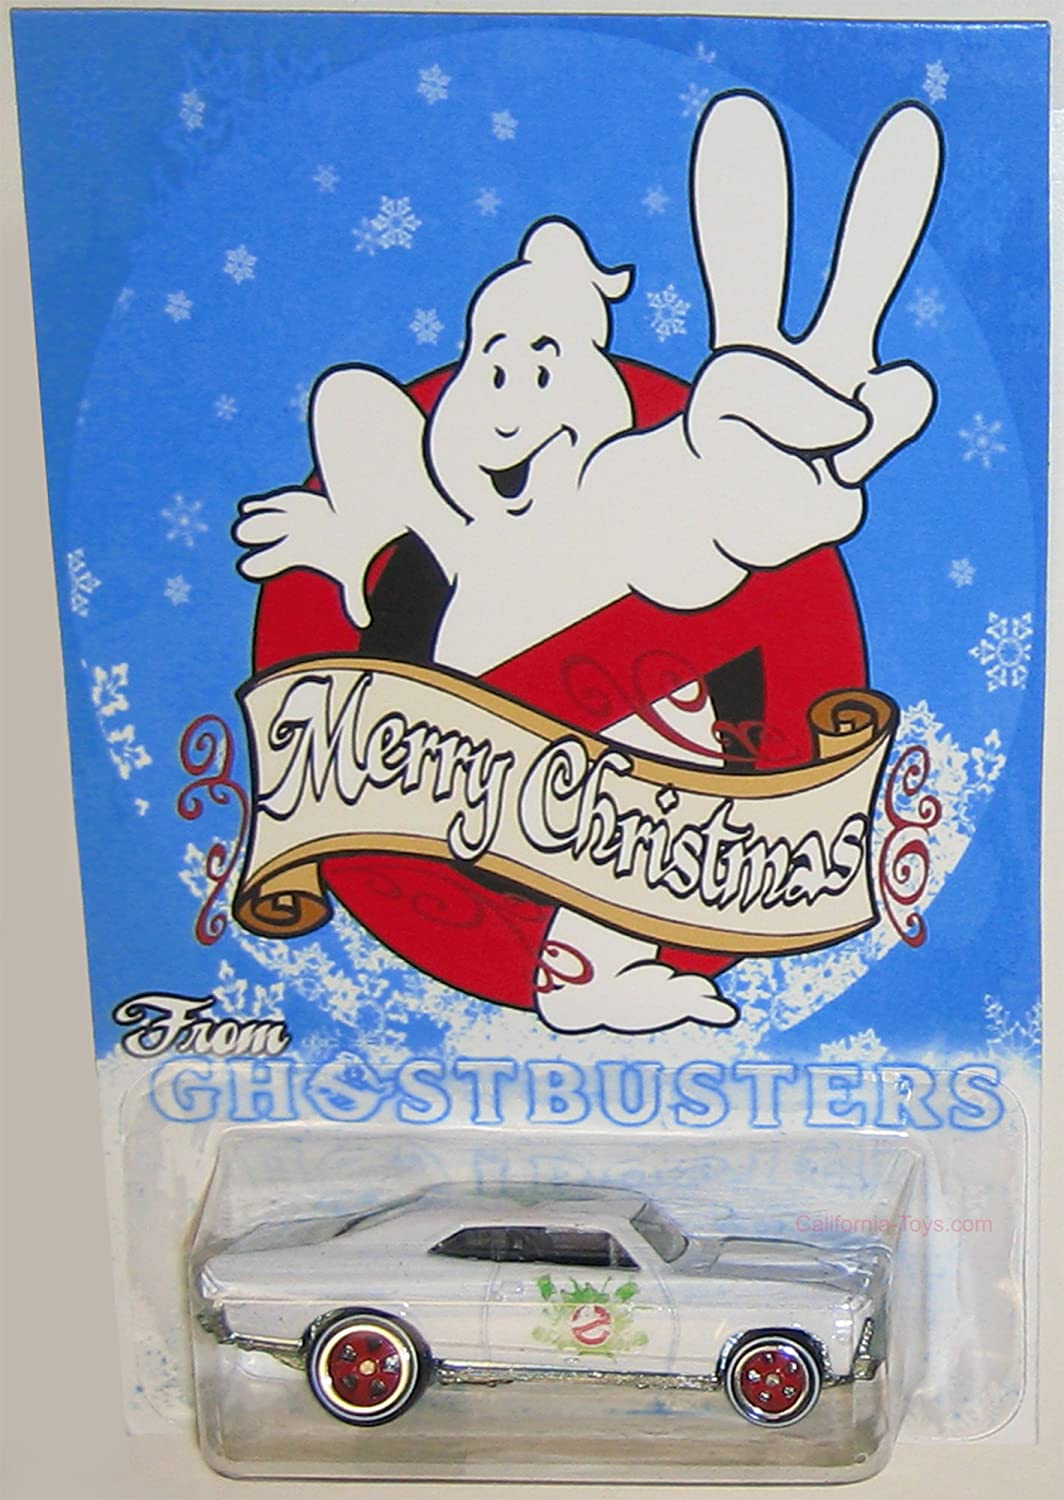 Buy 1966 Chevy Nova Hot Wheels Merry Christmas From Ghostbusters